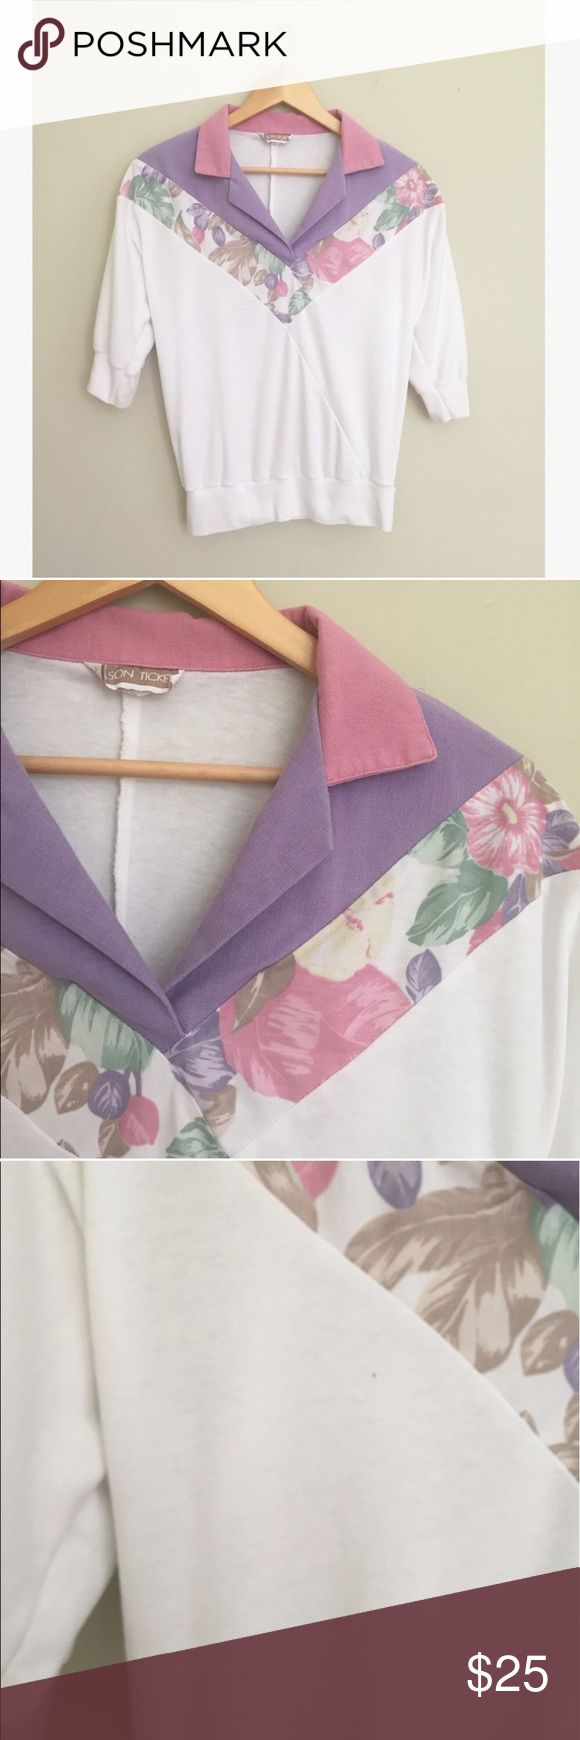 """Vintage Tropical Floral Polo Pullover Retro tropical flower and pastel print top by Season Ticket. Polo neck and lightweight stretchy cotton material. Tiny dark mark on bust is pictured. Size small.   23"""" long, 20"""" pit to pit.   Measurements approximate. No trades, offers welcome! Vintage Tops"""